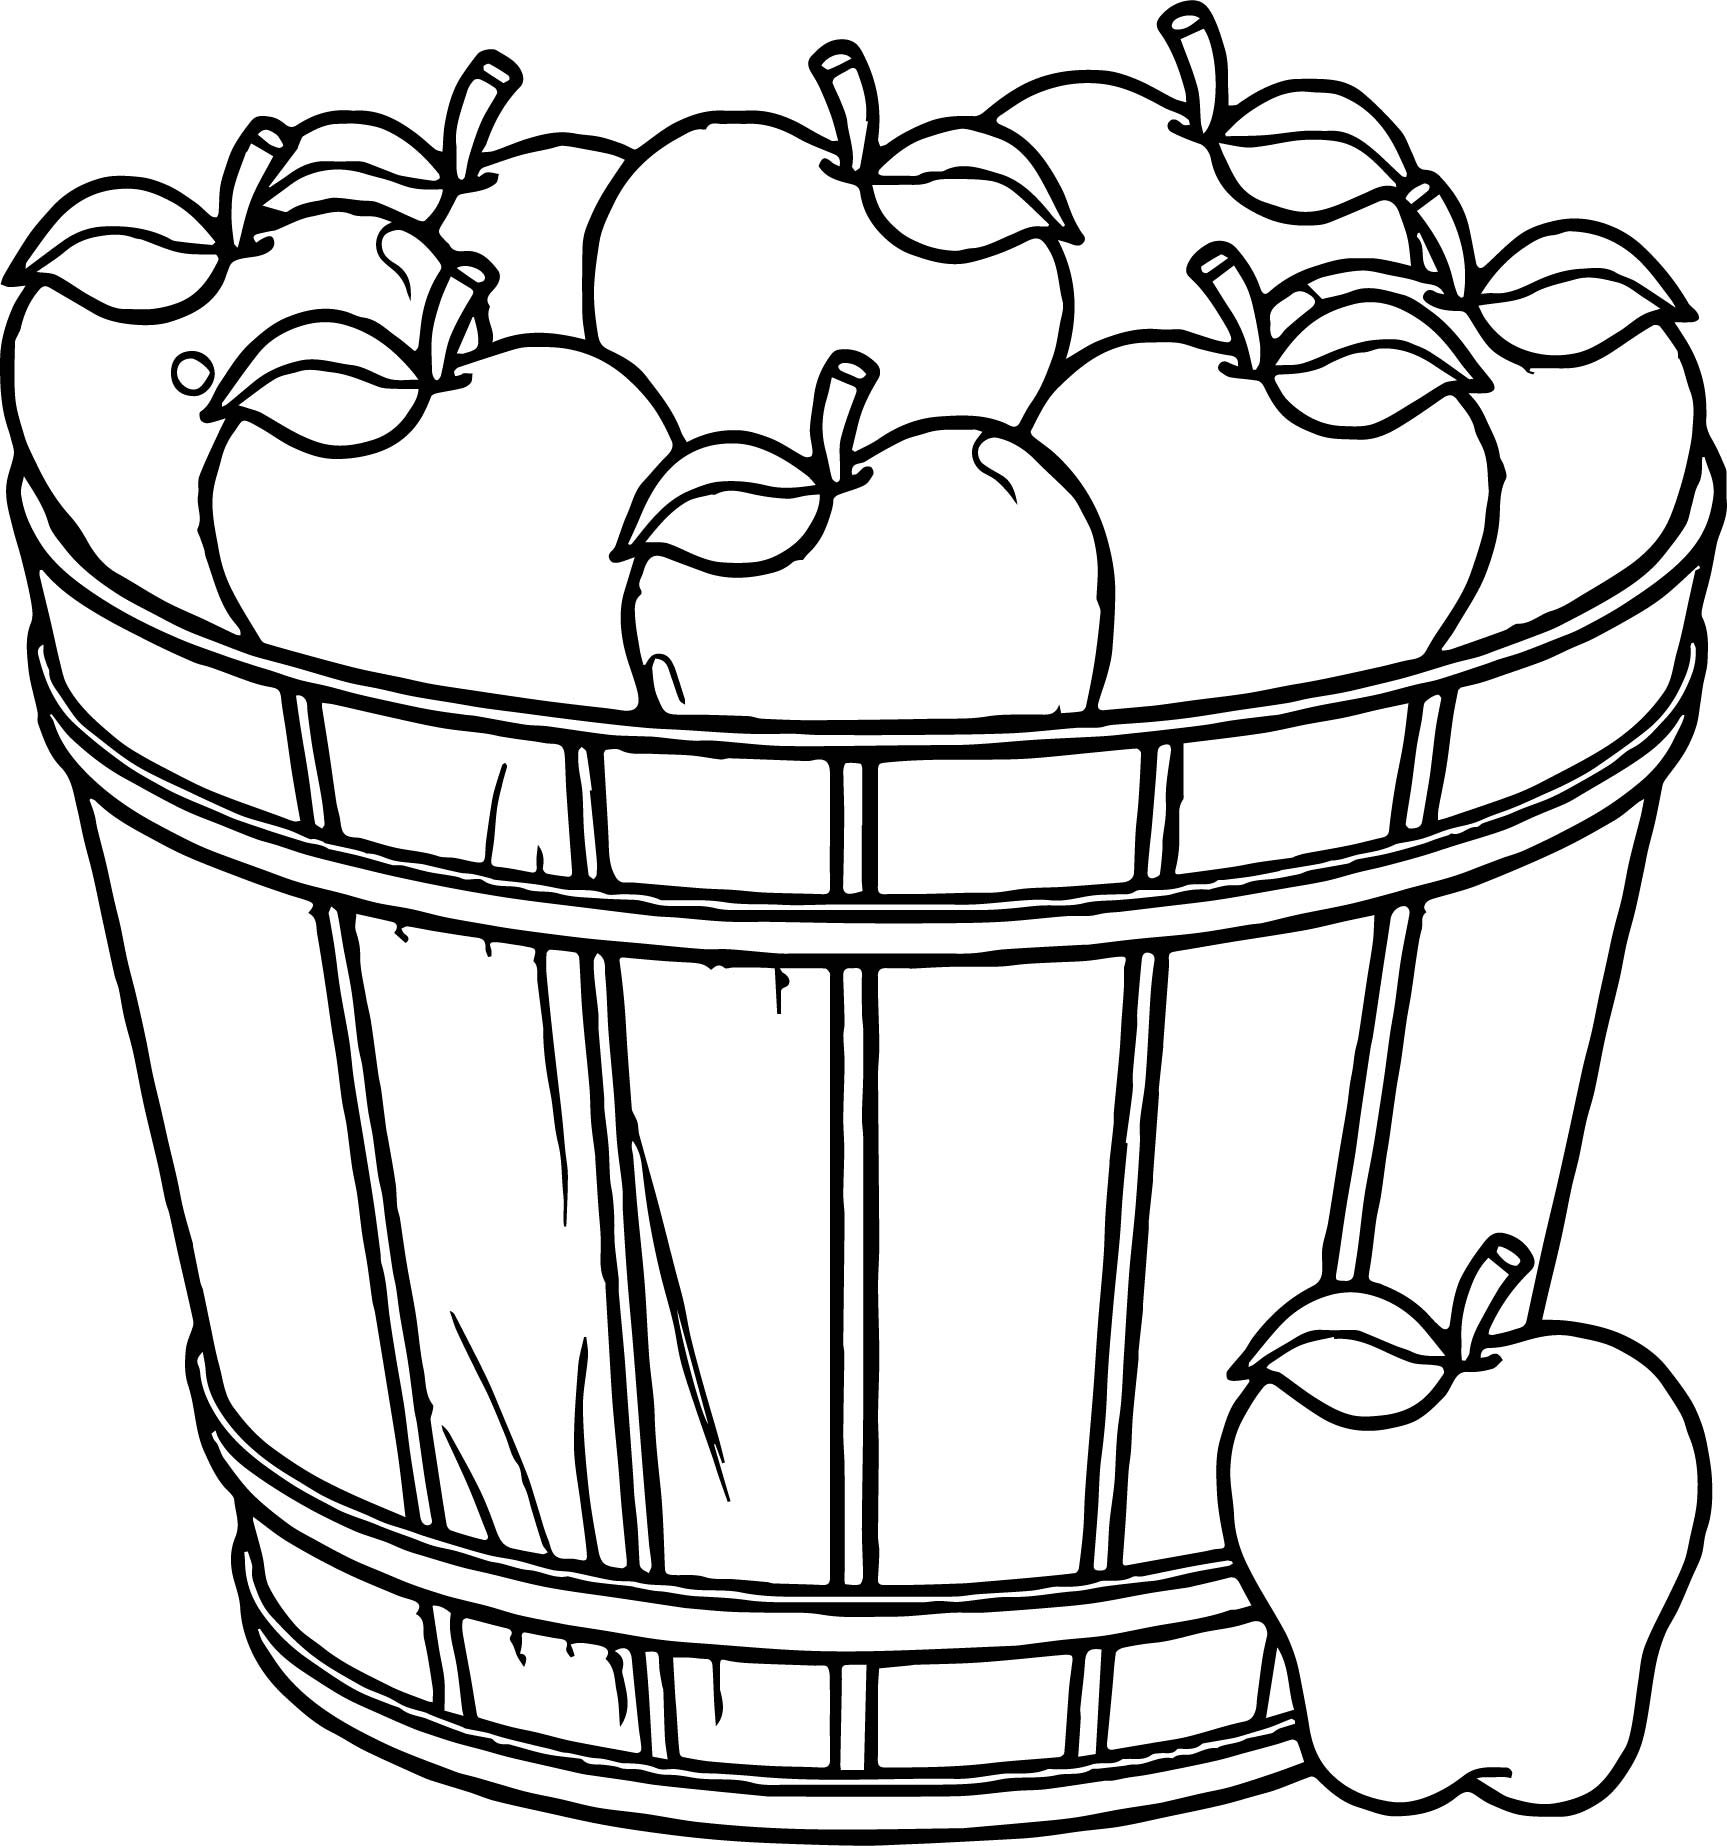 basket drawing empty apple basket coloring page sketch coloring page drawing basket